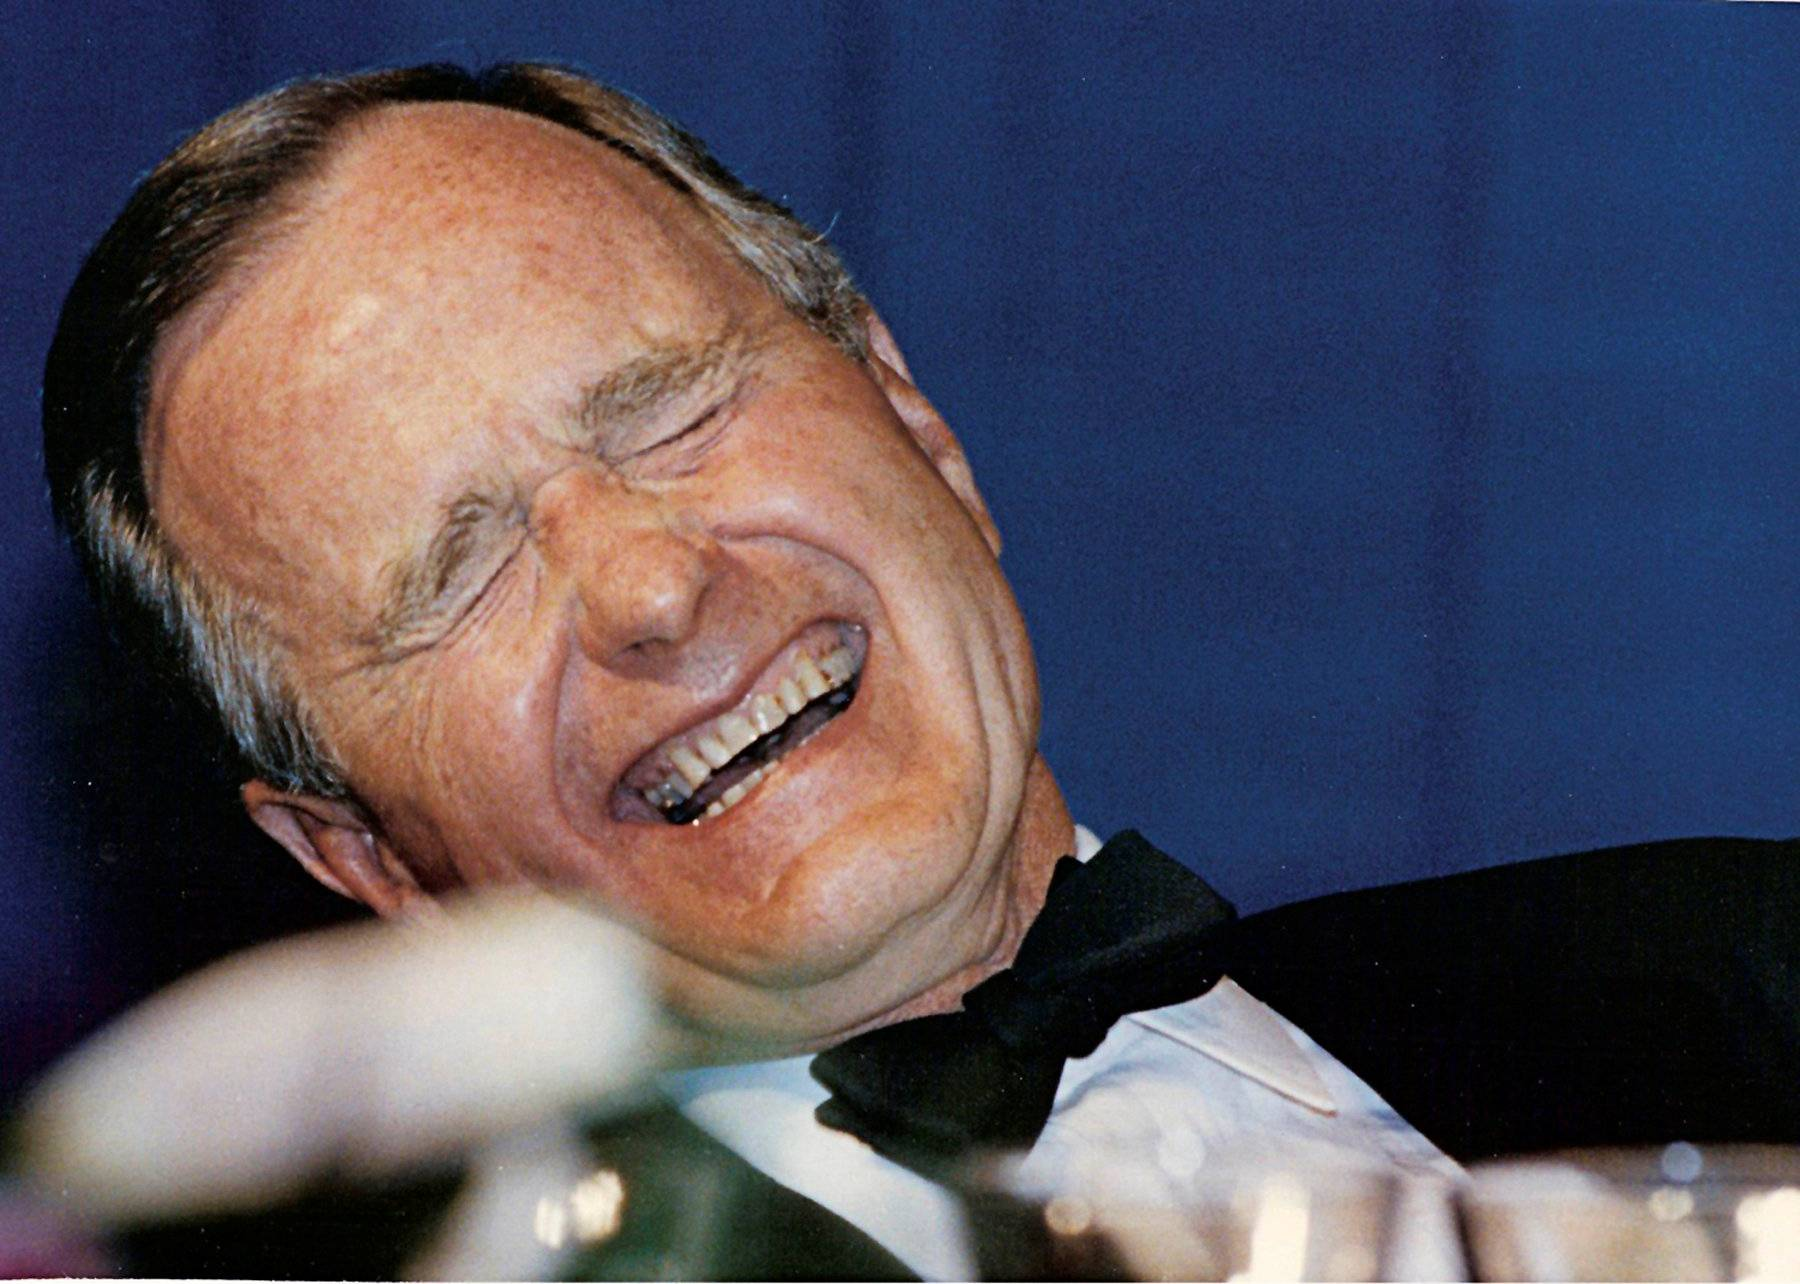 FILE PHOTO: U.S. President George H.W. Bush laughs while attending the annual White House Correspondents Association Awards dinner in Washington